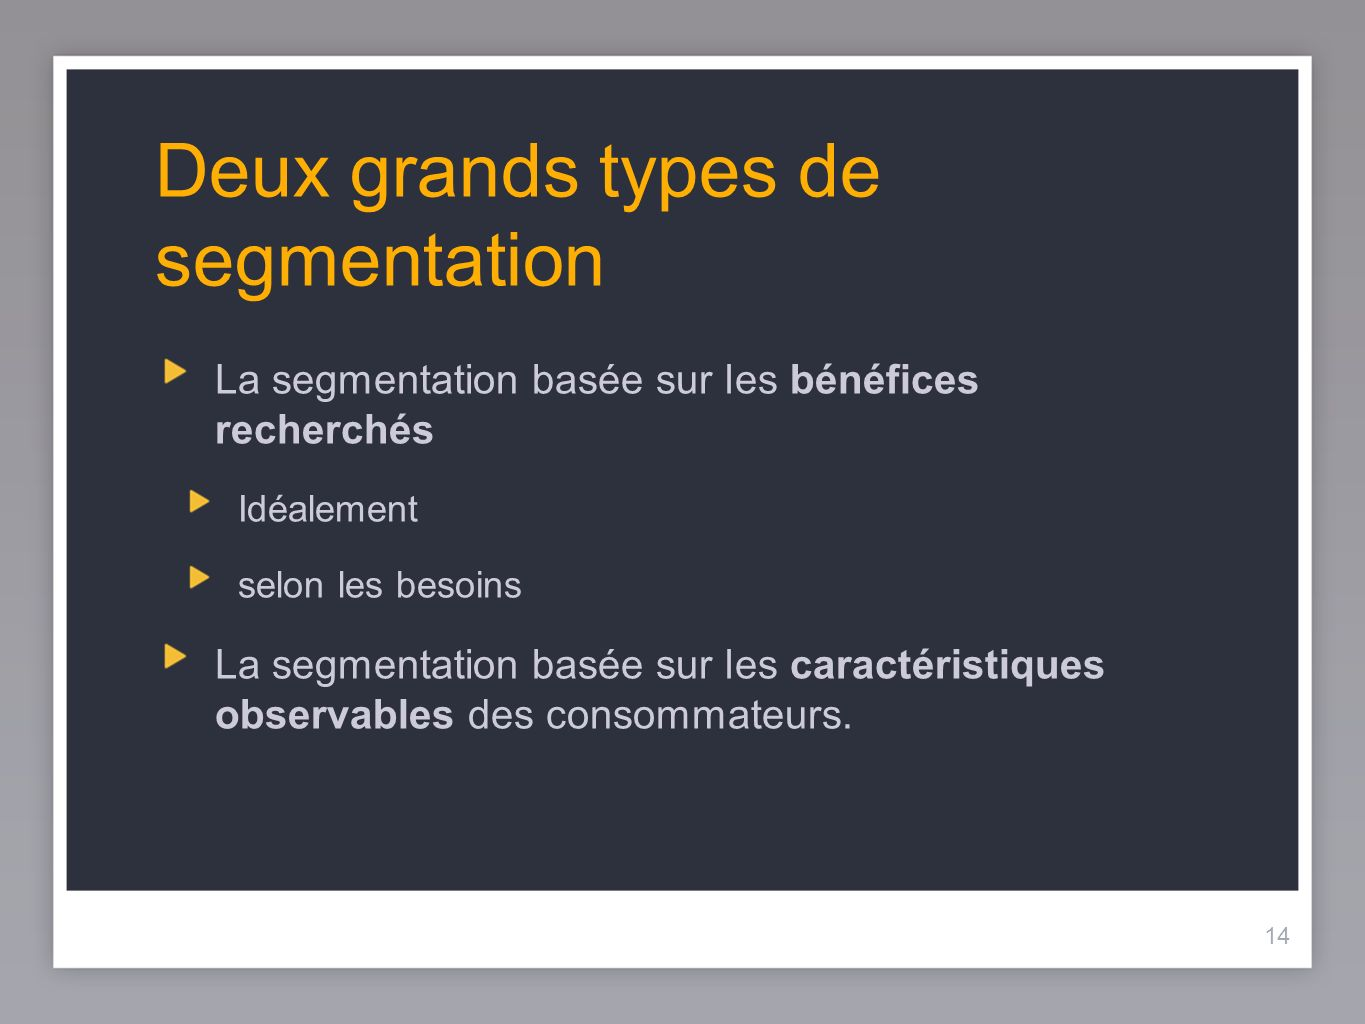 Deux grands types de segmentation